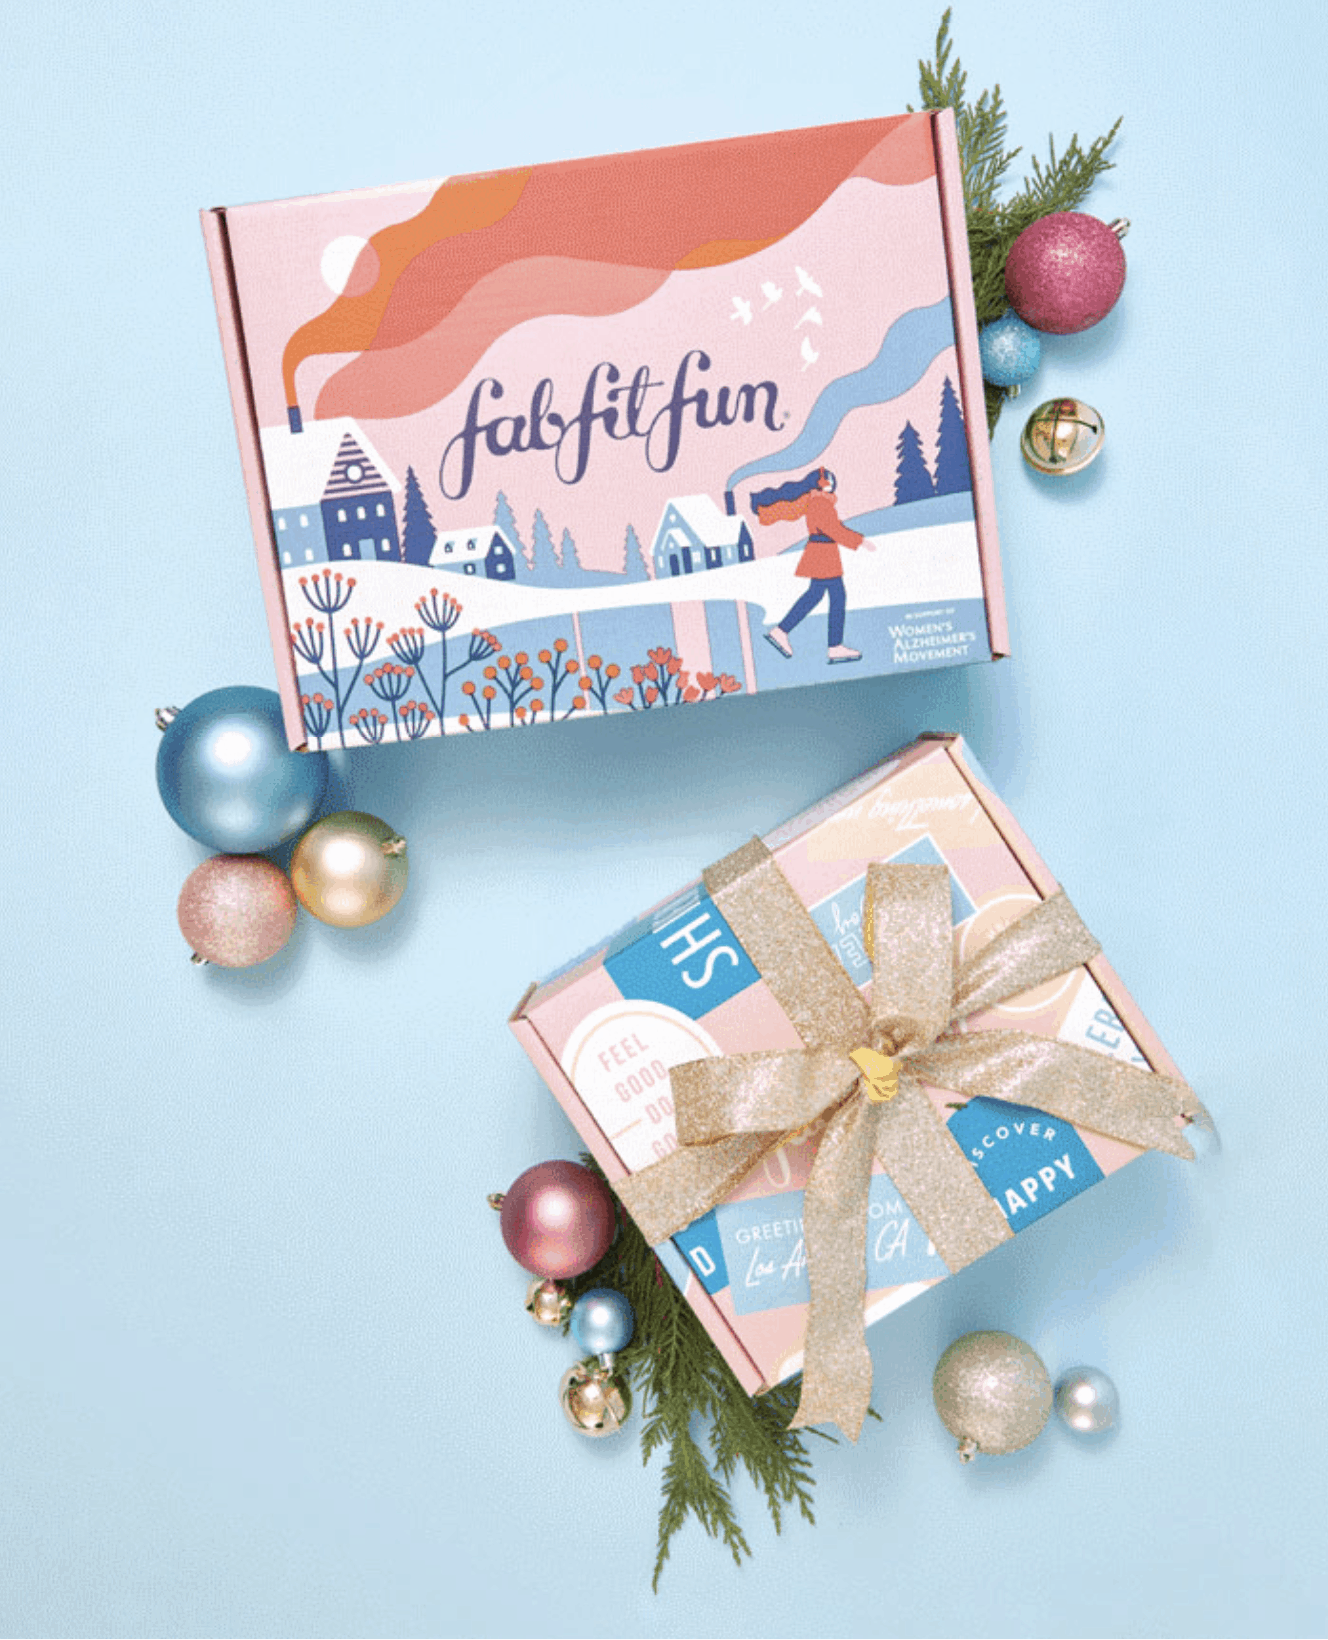 FabFitFun Box Black Friday Deal: FREE $150 Value Mini Box with Subscription!